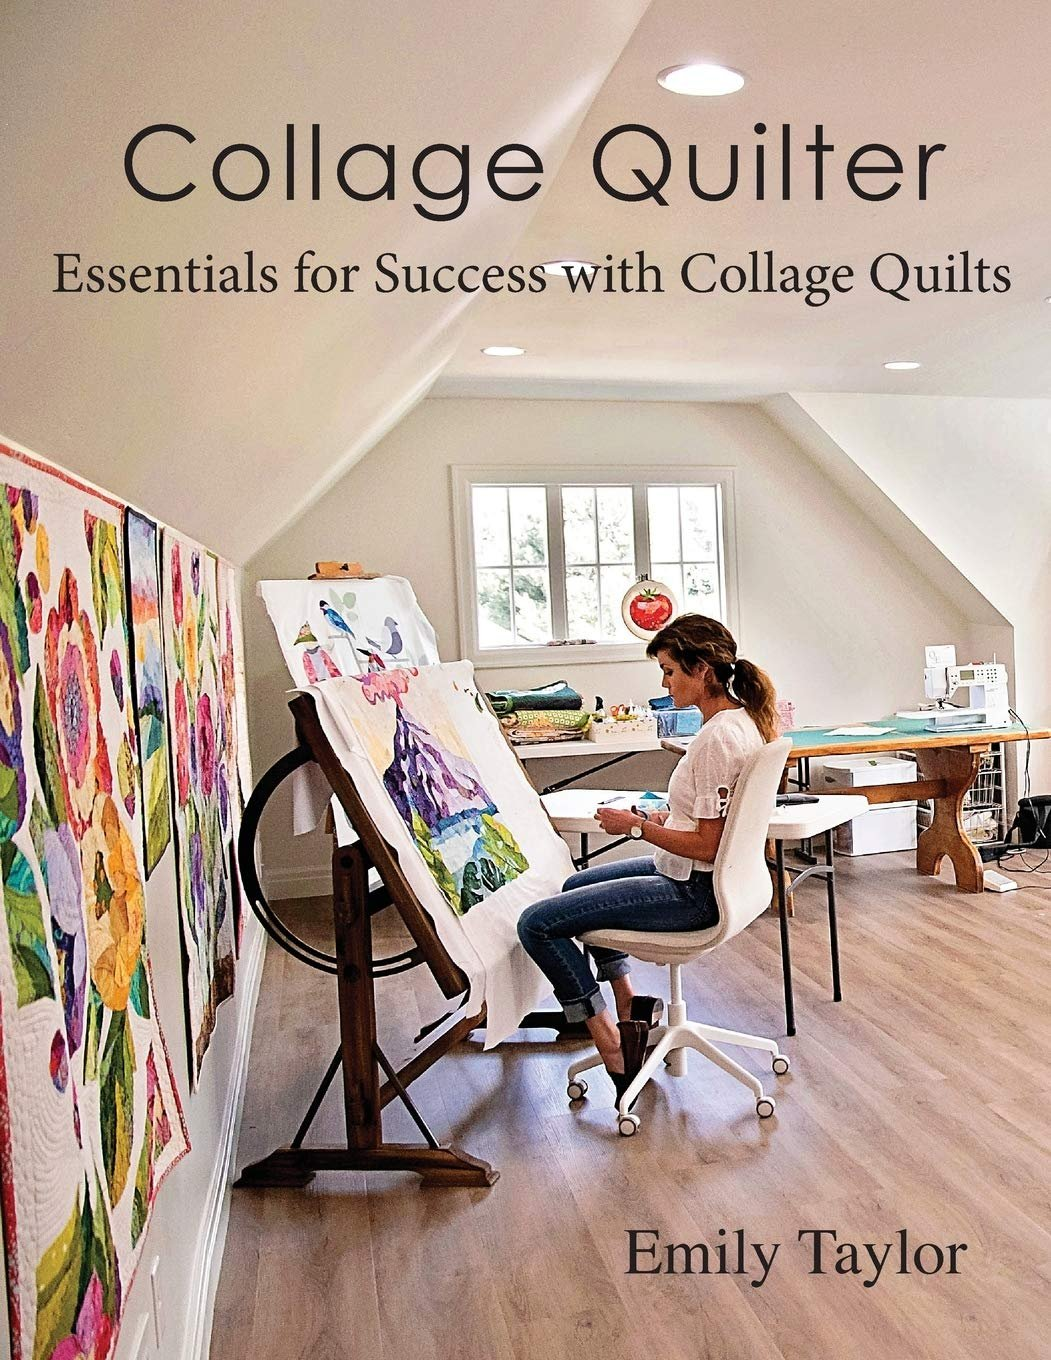 *Collage Quilter Book